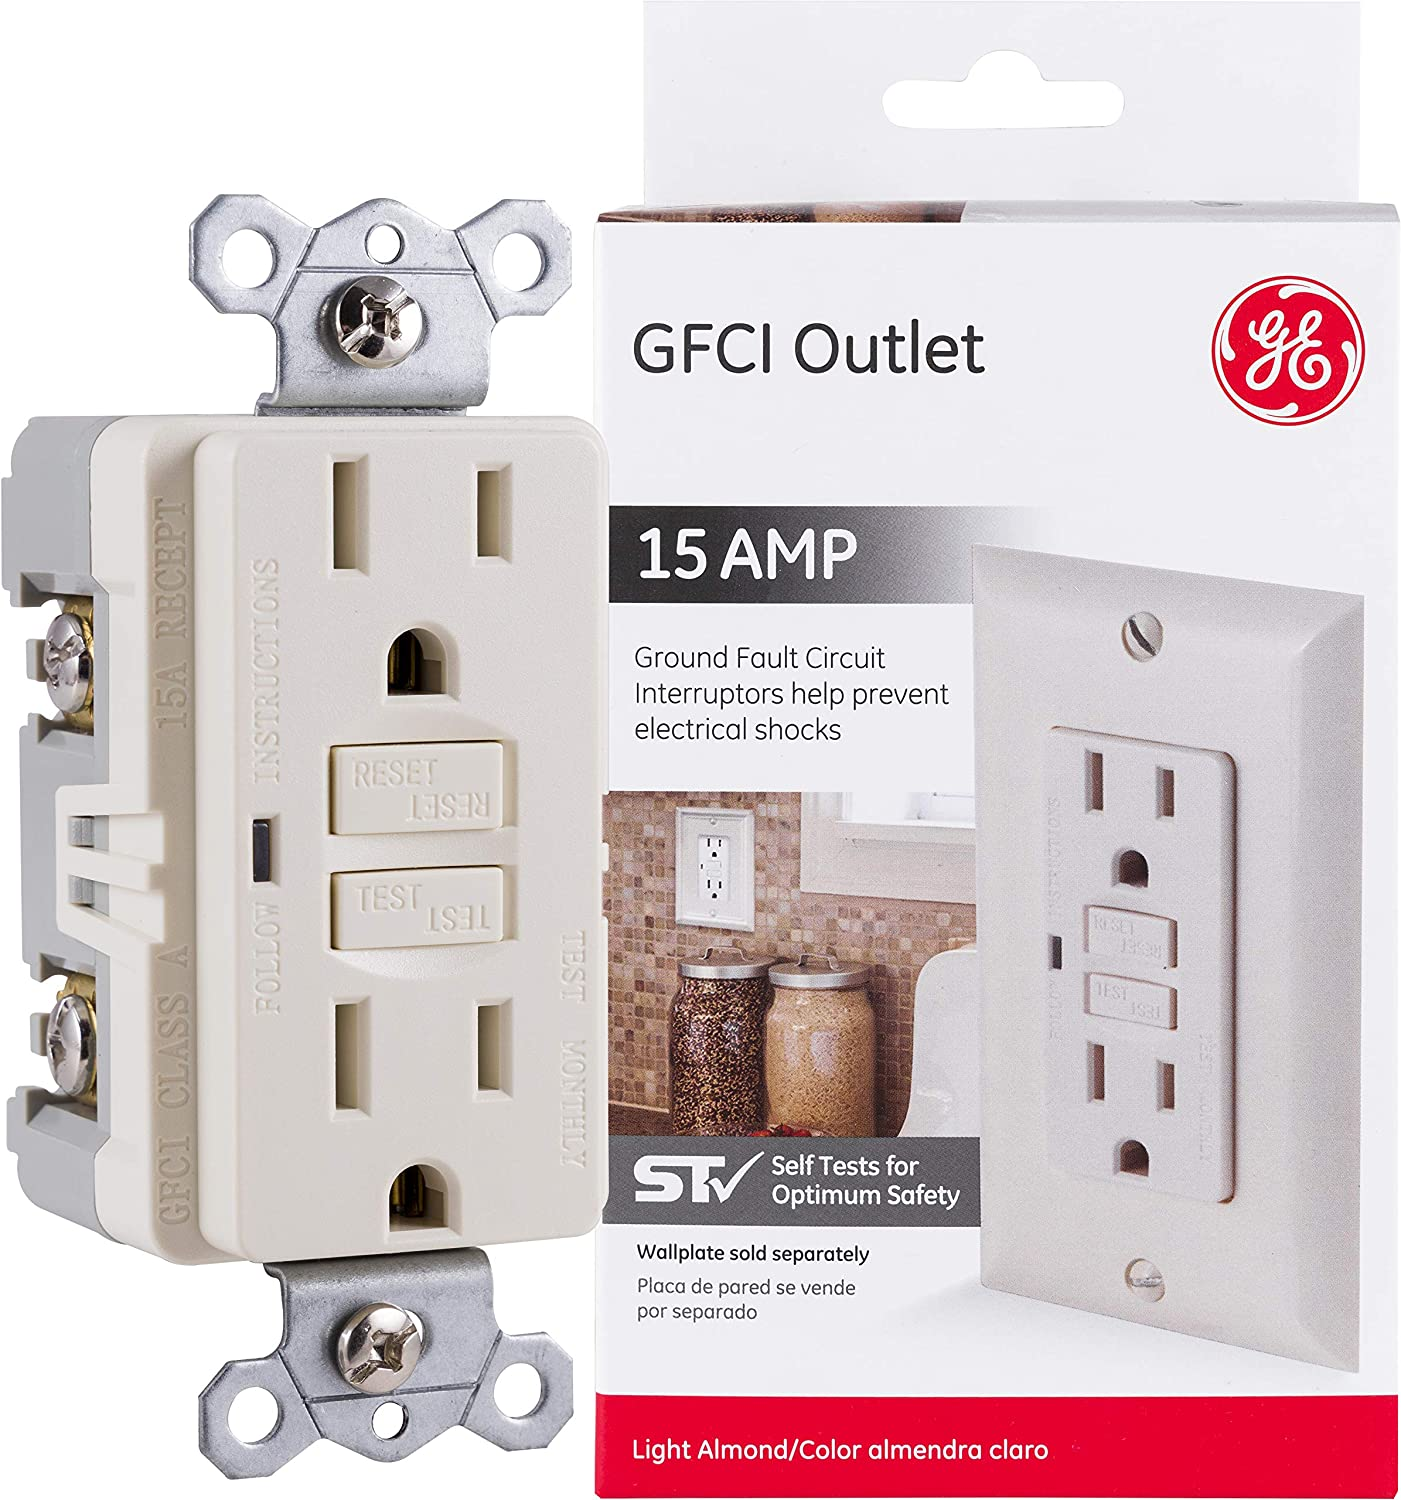 Gfci Outlet Wiring Diagram Also Wiring A Light Switch And Gfci